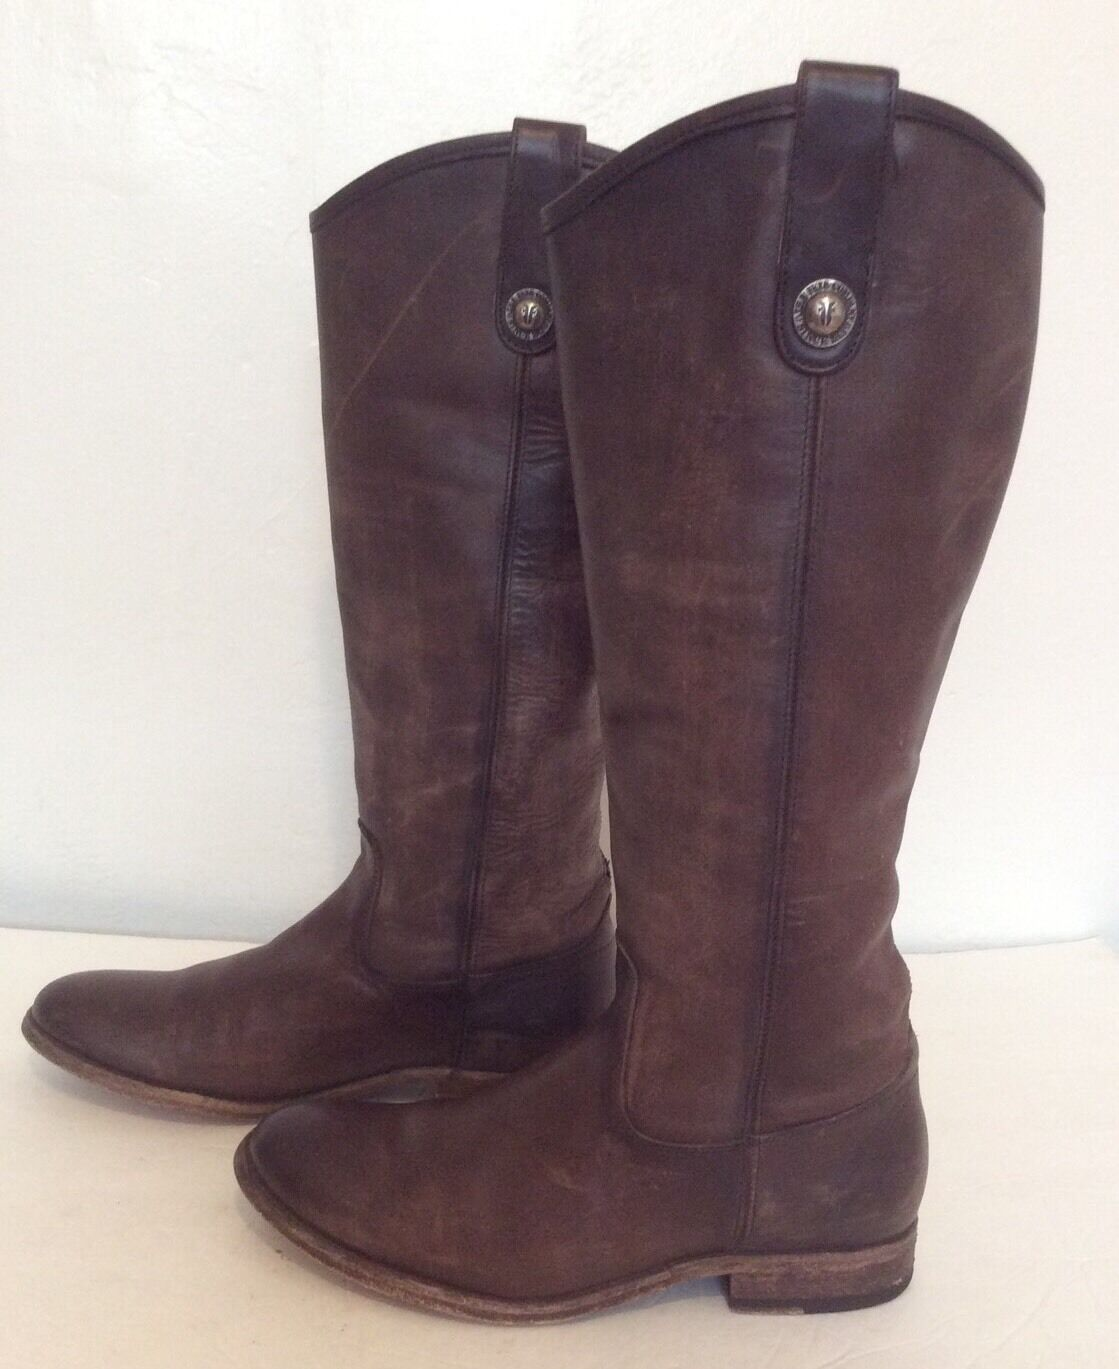 FRYE Melissa Button Leather Boots slate Women's Size 7 7 7 B 4ef6bc